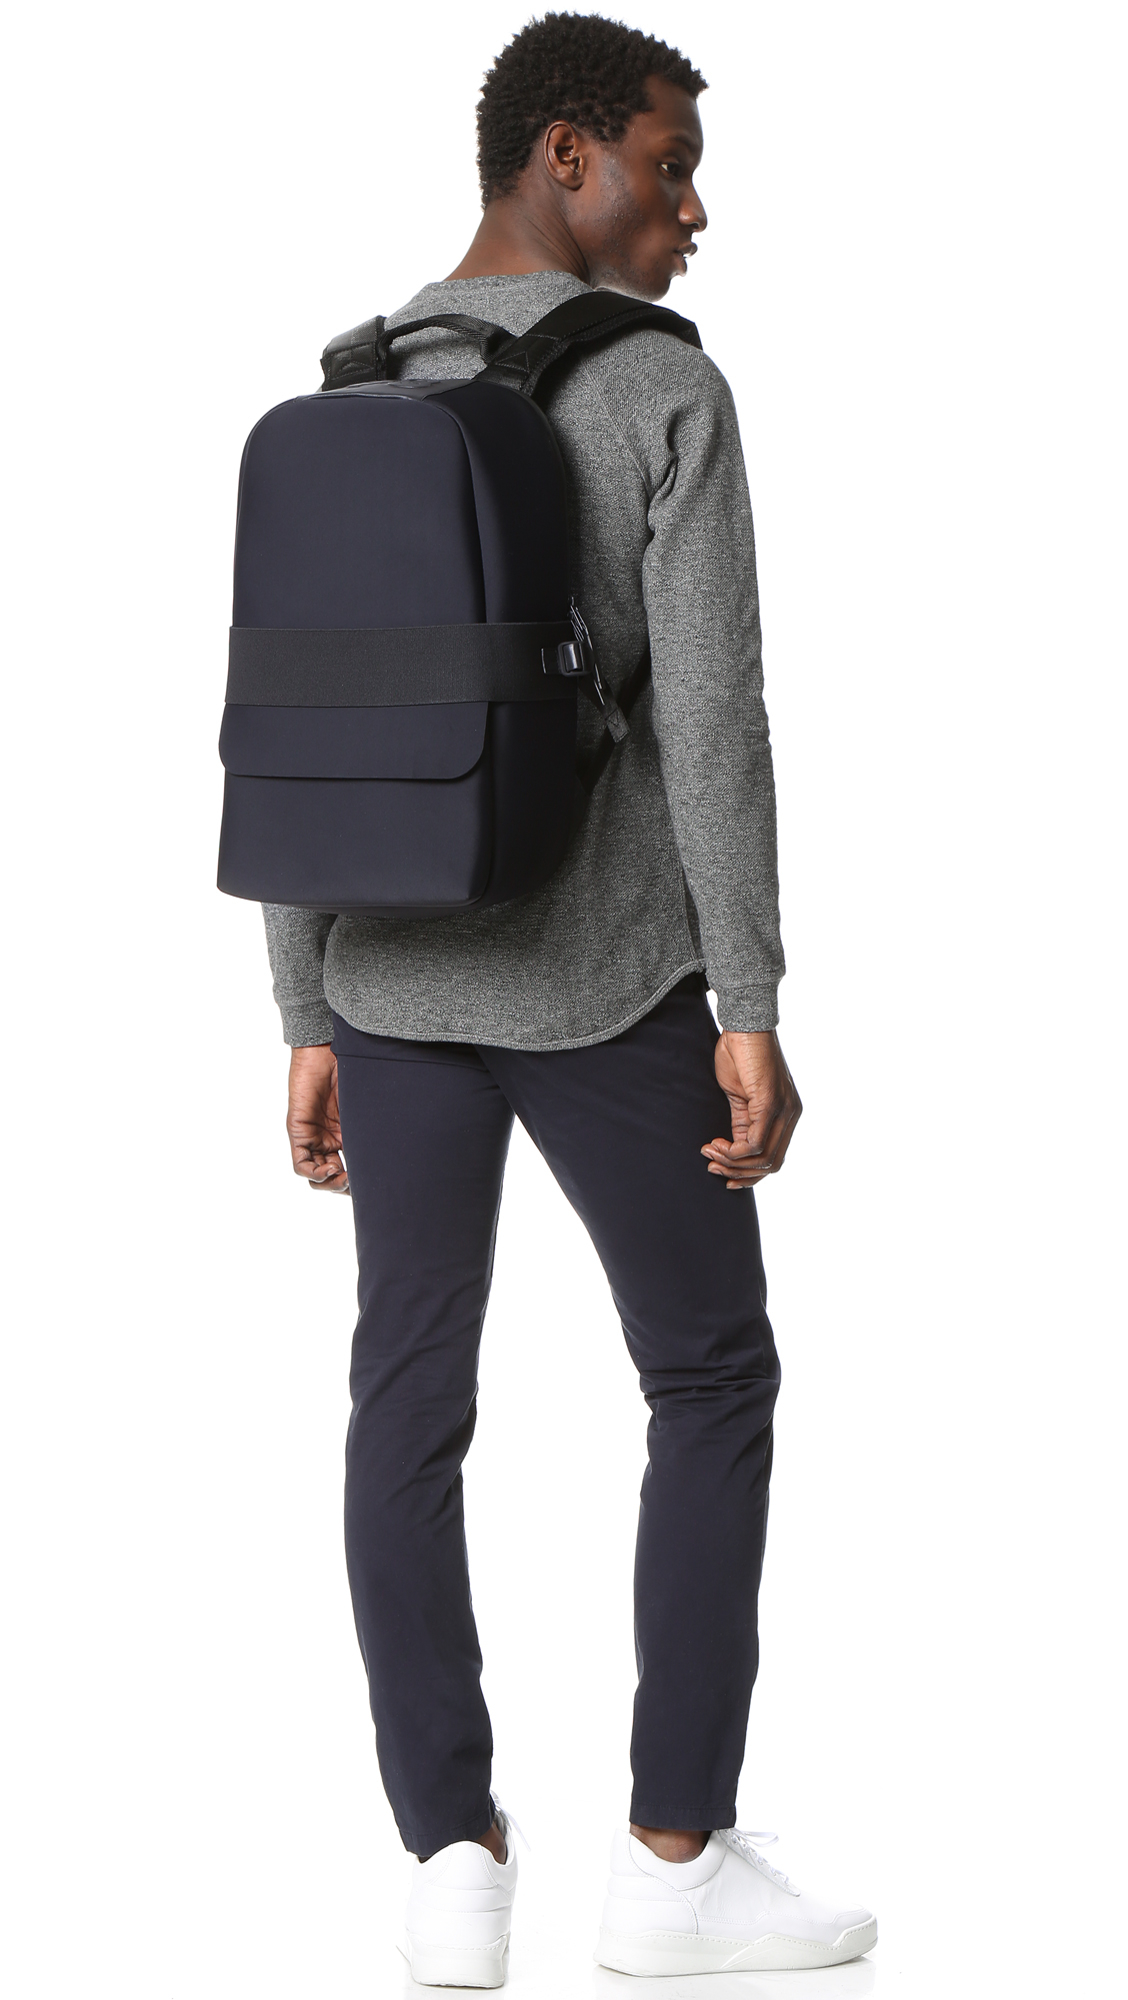 c89923f969d Lyst - Y-3 Qasa Backpack in Black for Men